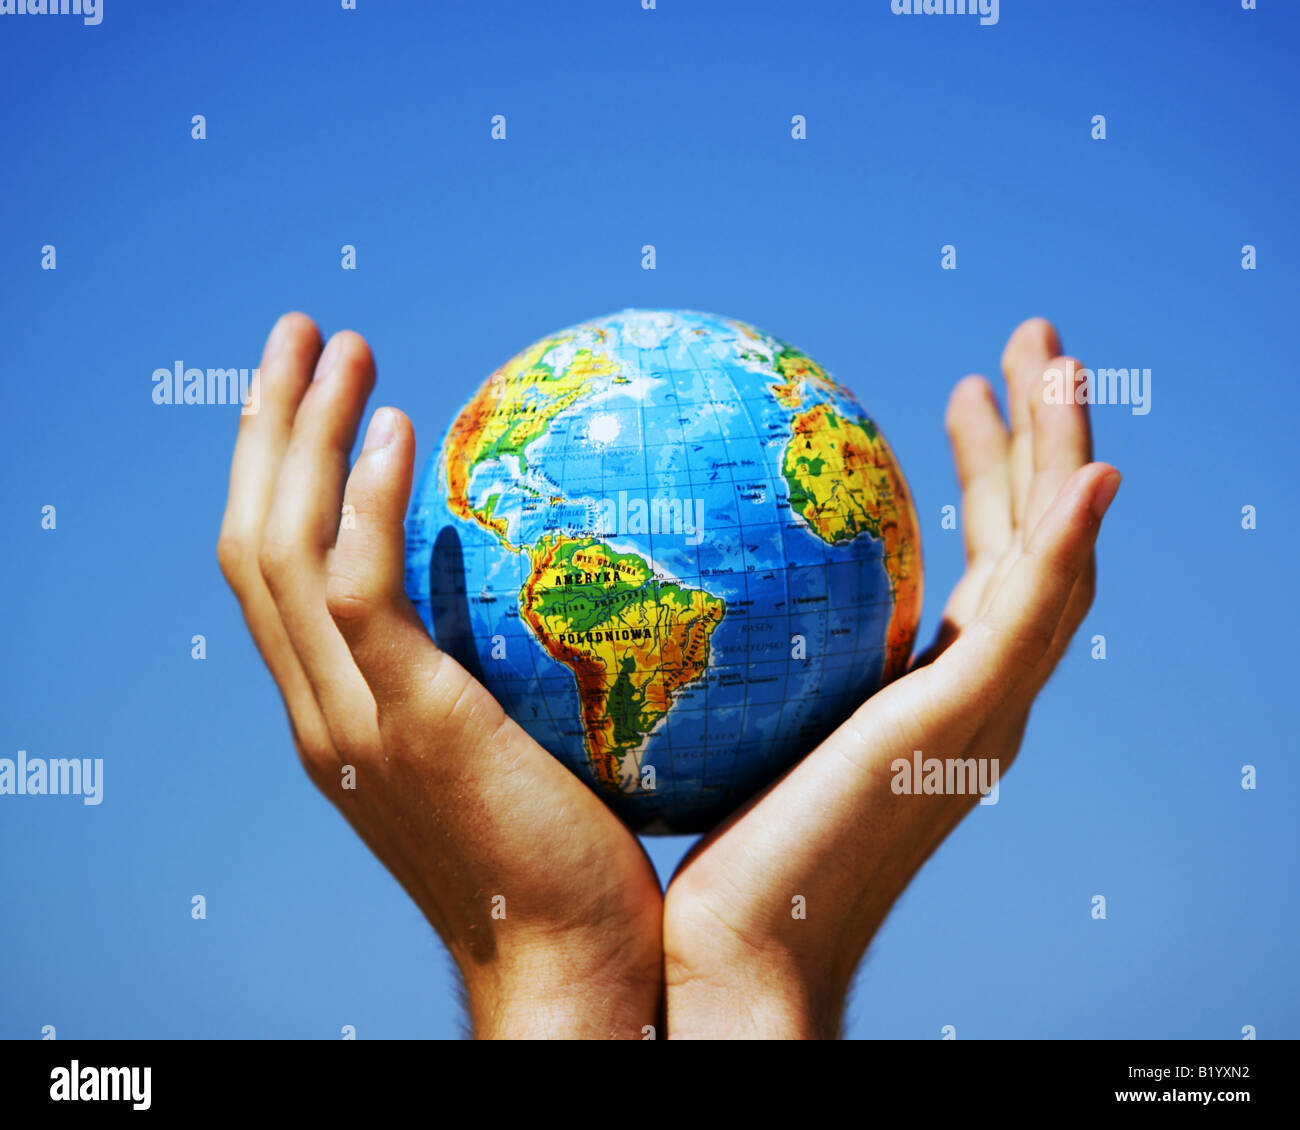 Earth globe in hands protected. Globe protection concept, recycling, world issues, environment / environmental themes - Stock Image